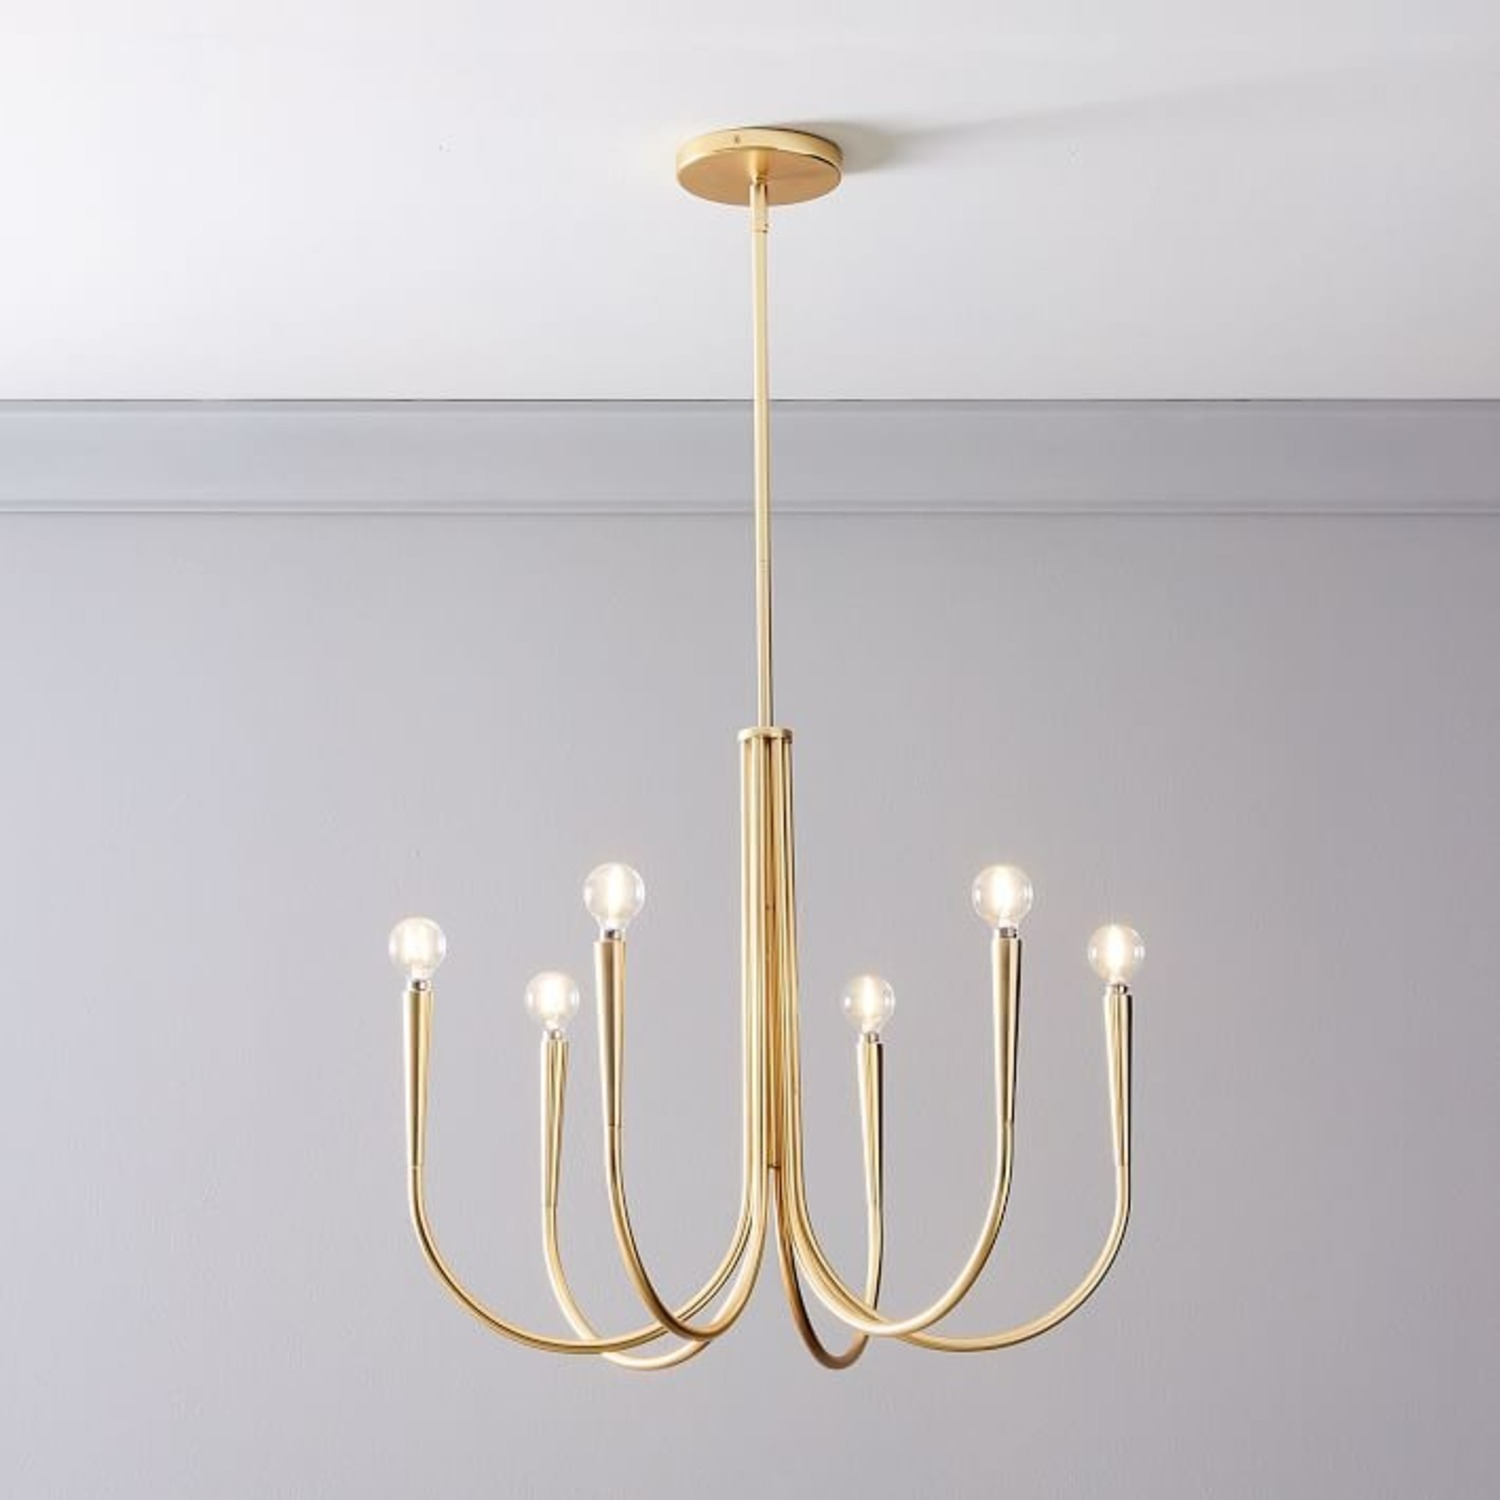 West Elm Swoop Arm Chandelier, Small, Brass - image-0